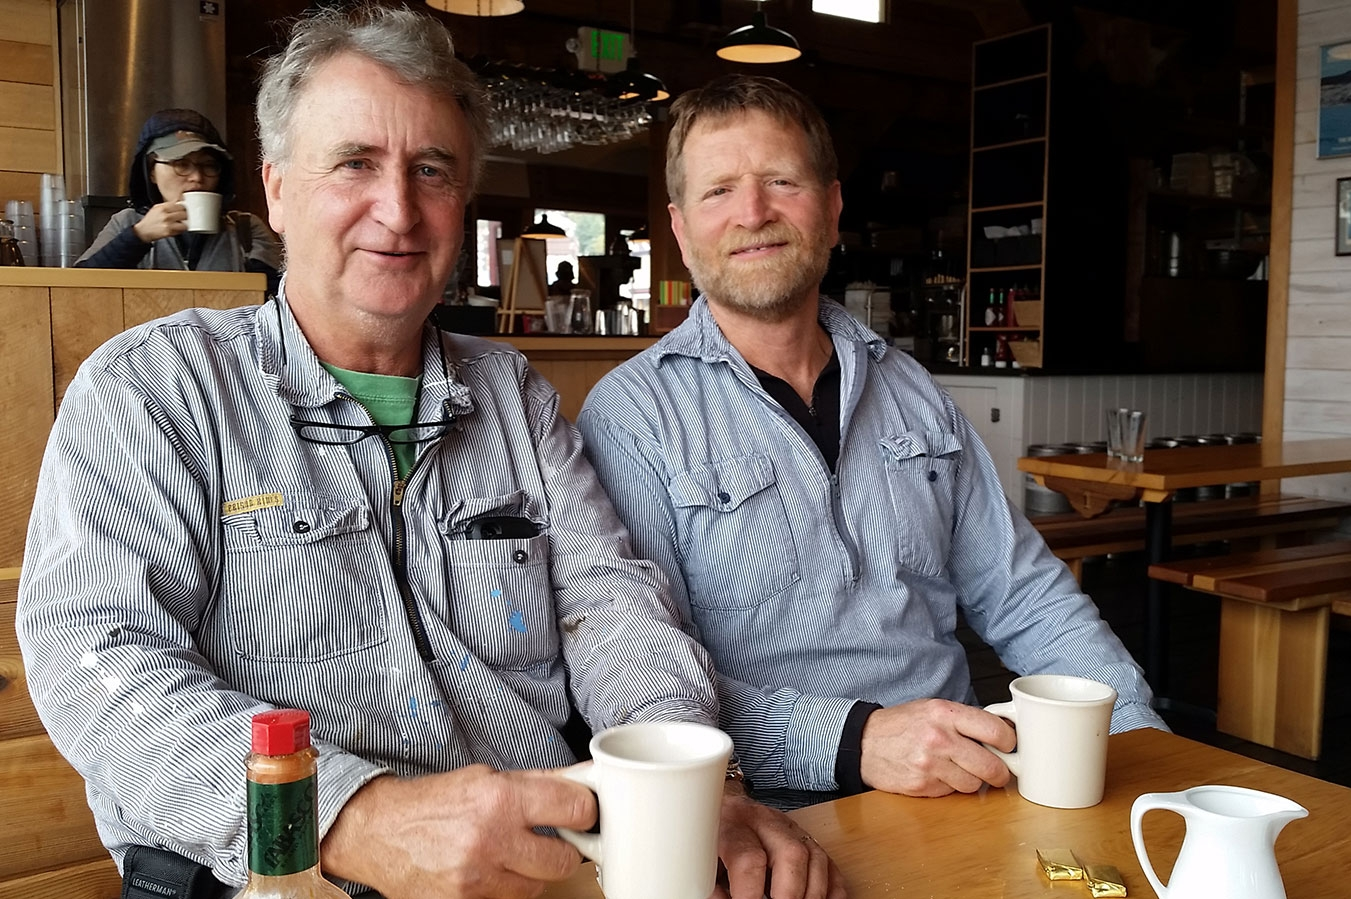 Southeast Sea Kayaks'Owner Greg Thomas shares a cup of coffee with Chuck Slagle at Chuck's restaurant, The Alaska Fish House.